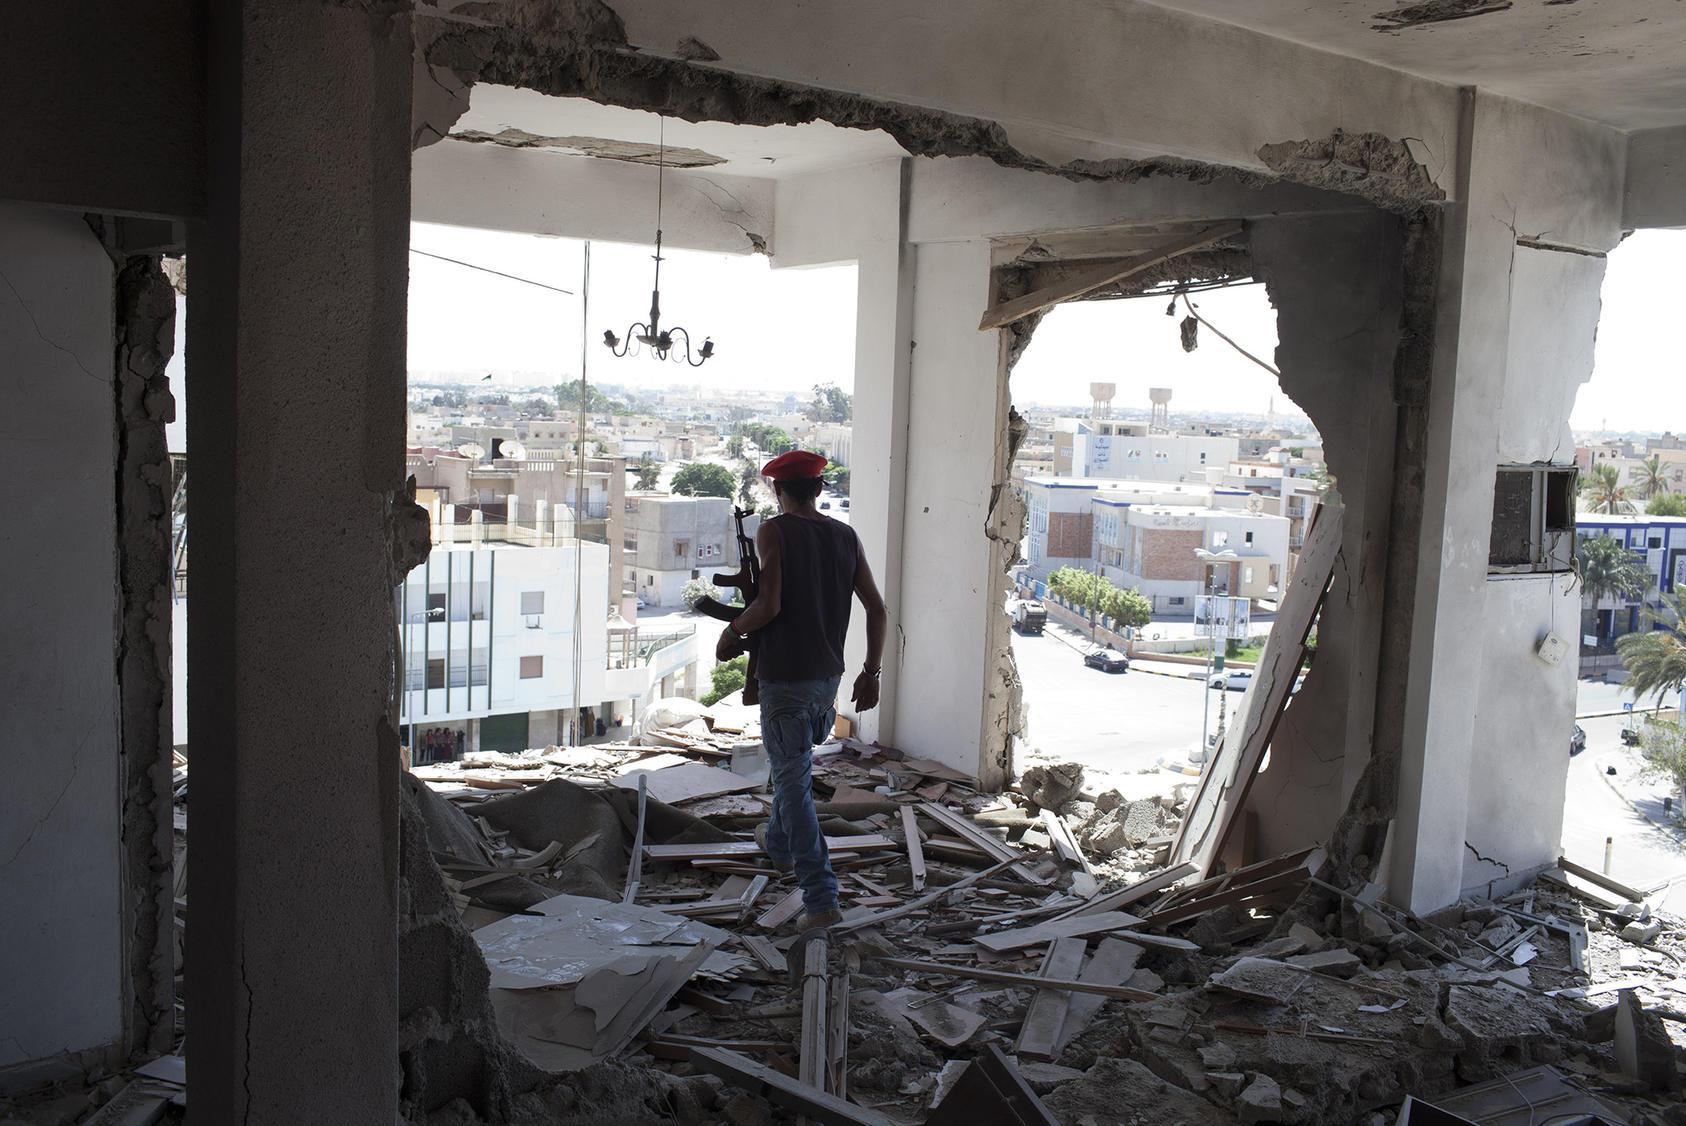 An armed resident of Tripoli, surveys damage from fighting in 2011. This month's offensive has displaced thousands and risks a new battle for the capital city. (Tyler Hicks/The New York Times)